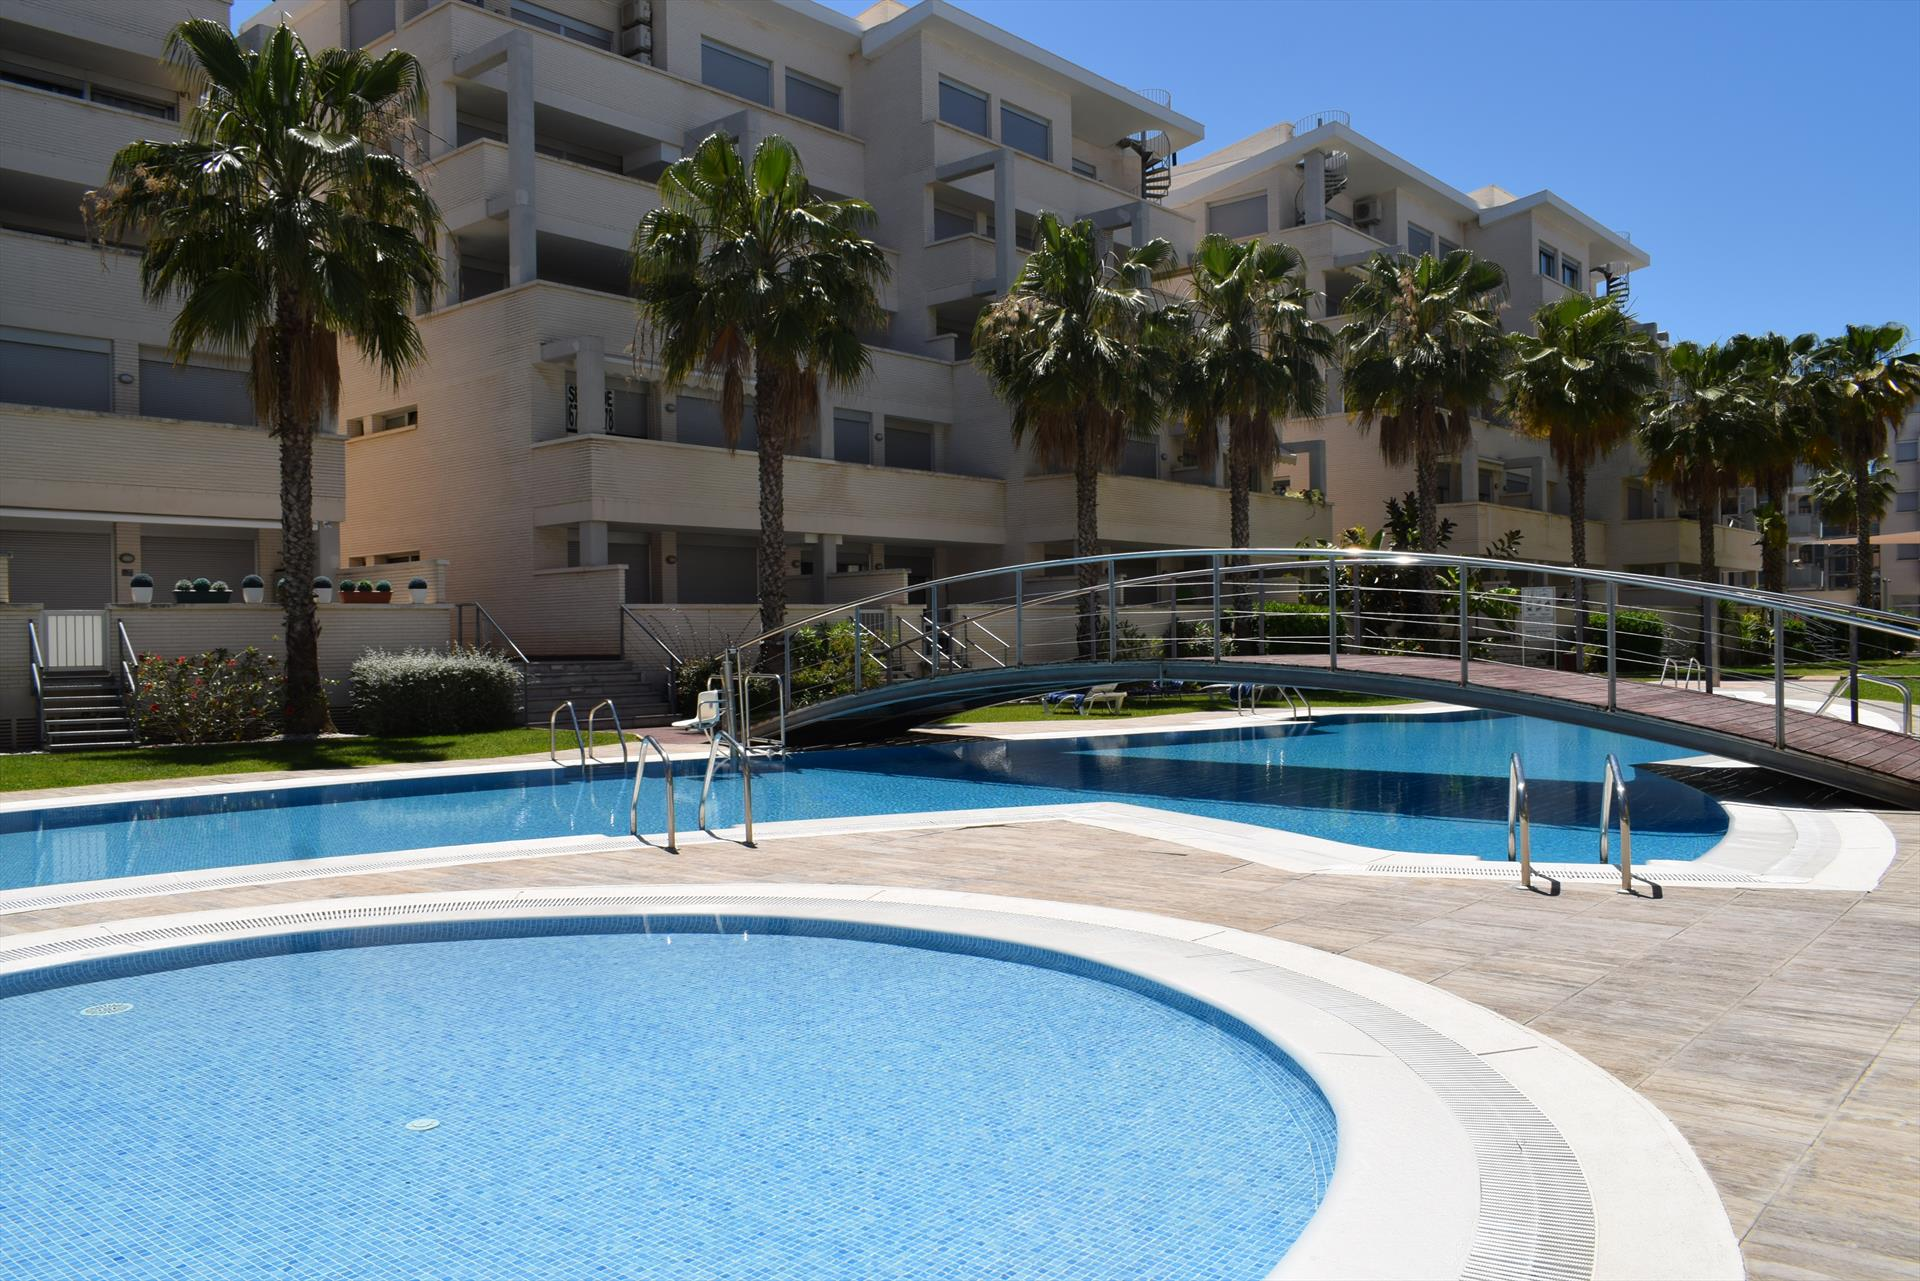 PB2203 Elegance Assagador Marjal, Beautiful and comfortable apartment  with communal pool in Denia, on the Costa Blanca, Spain for 4 persons.....